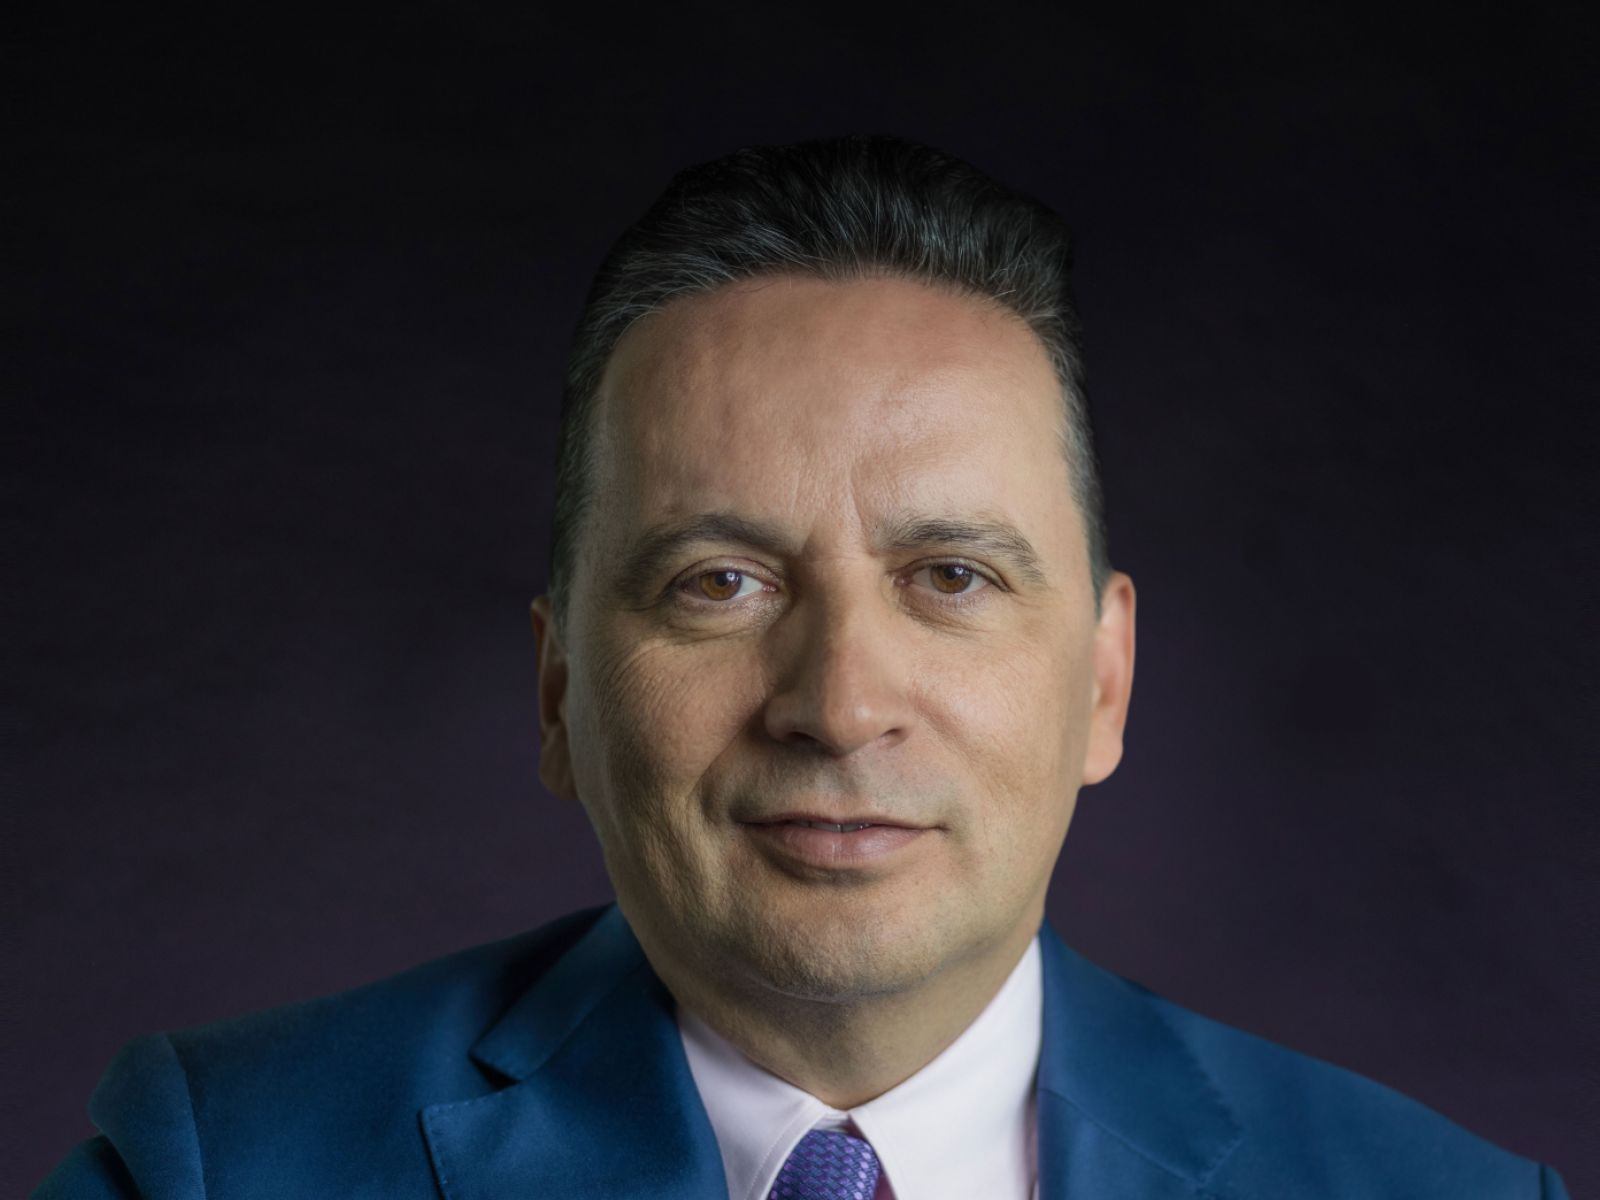 One United Properties appoints Claudio Cisullo as Chairman of the Board of Directors